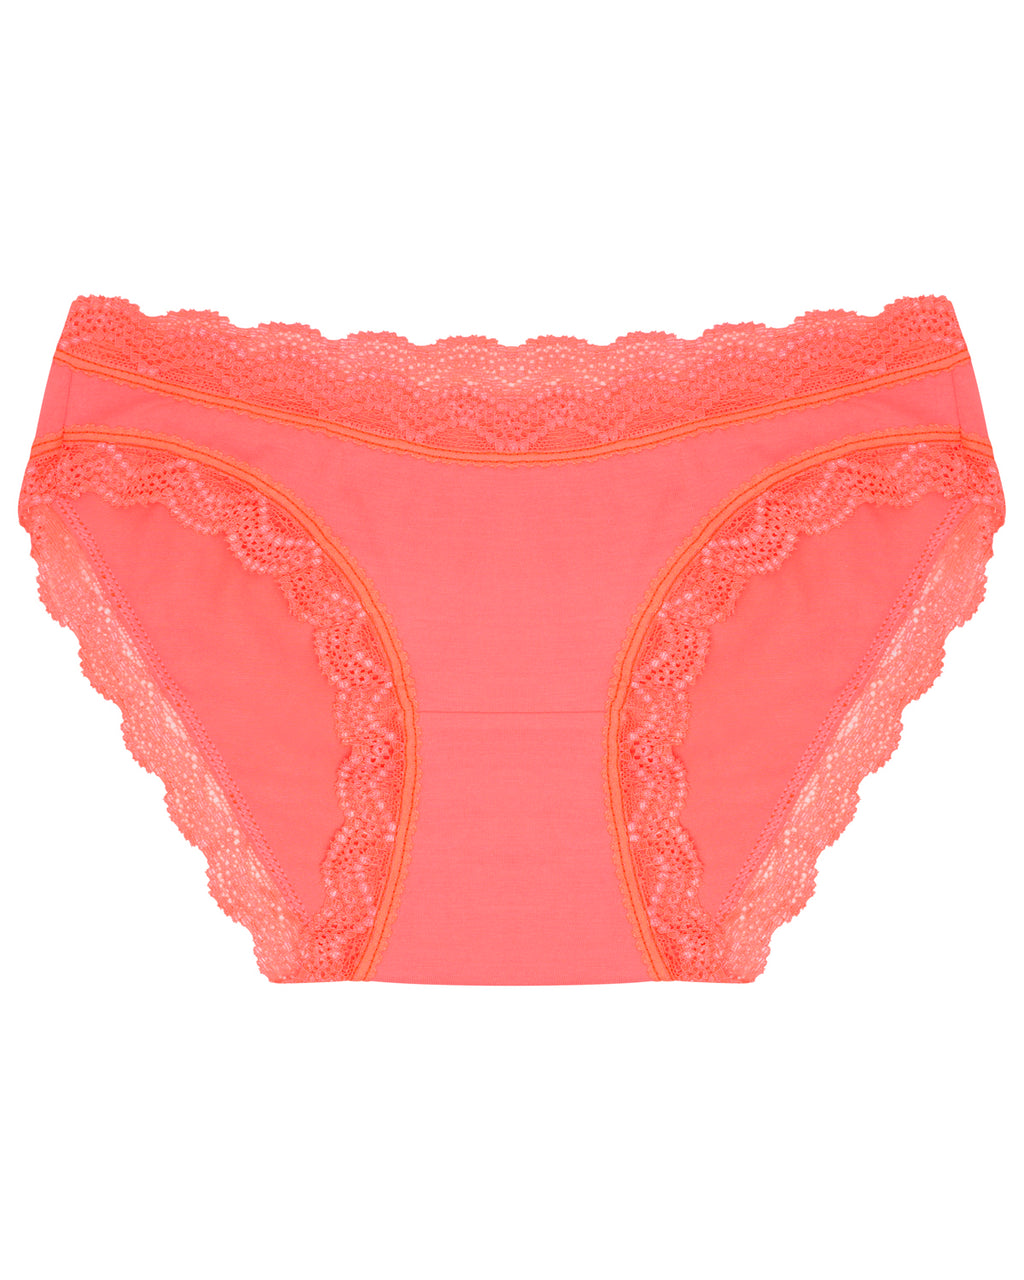 Neon Orange Plain Original Knicker